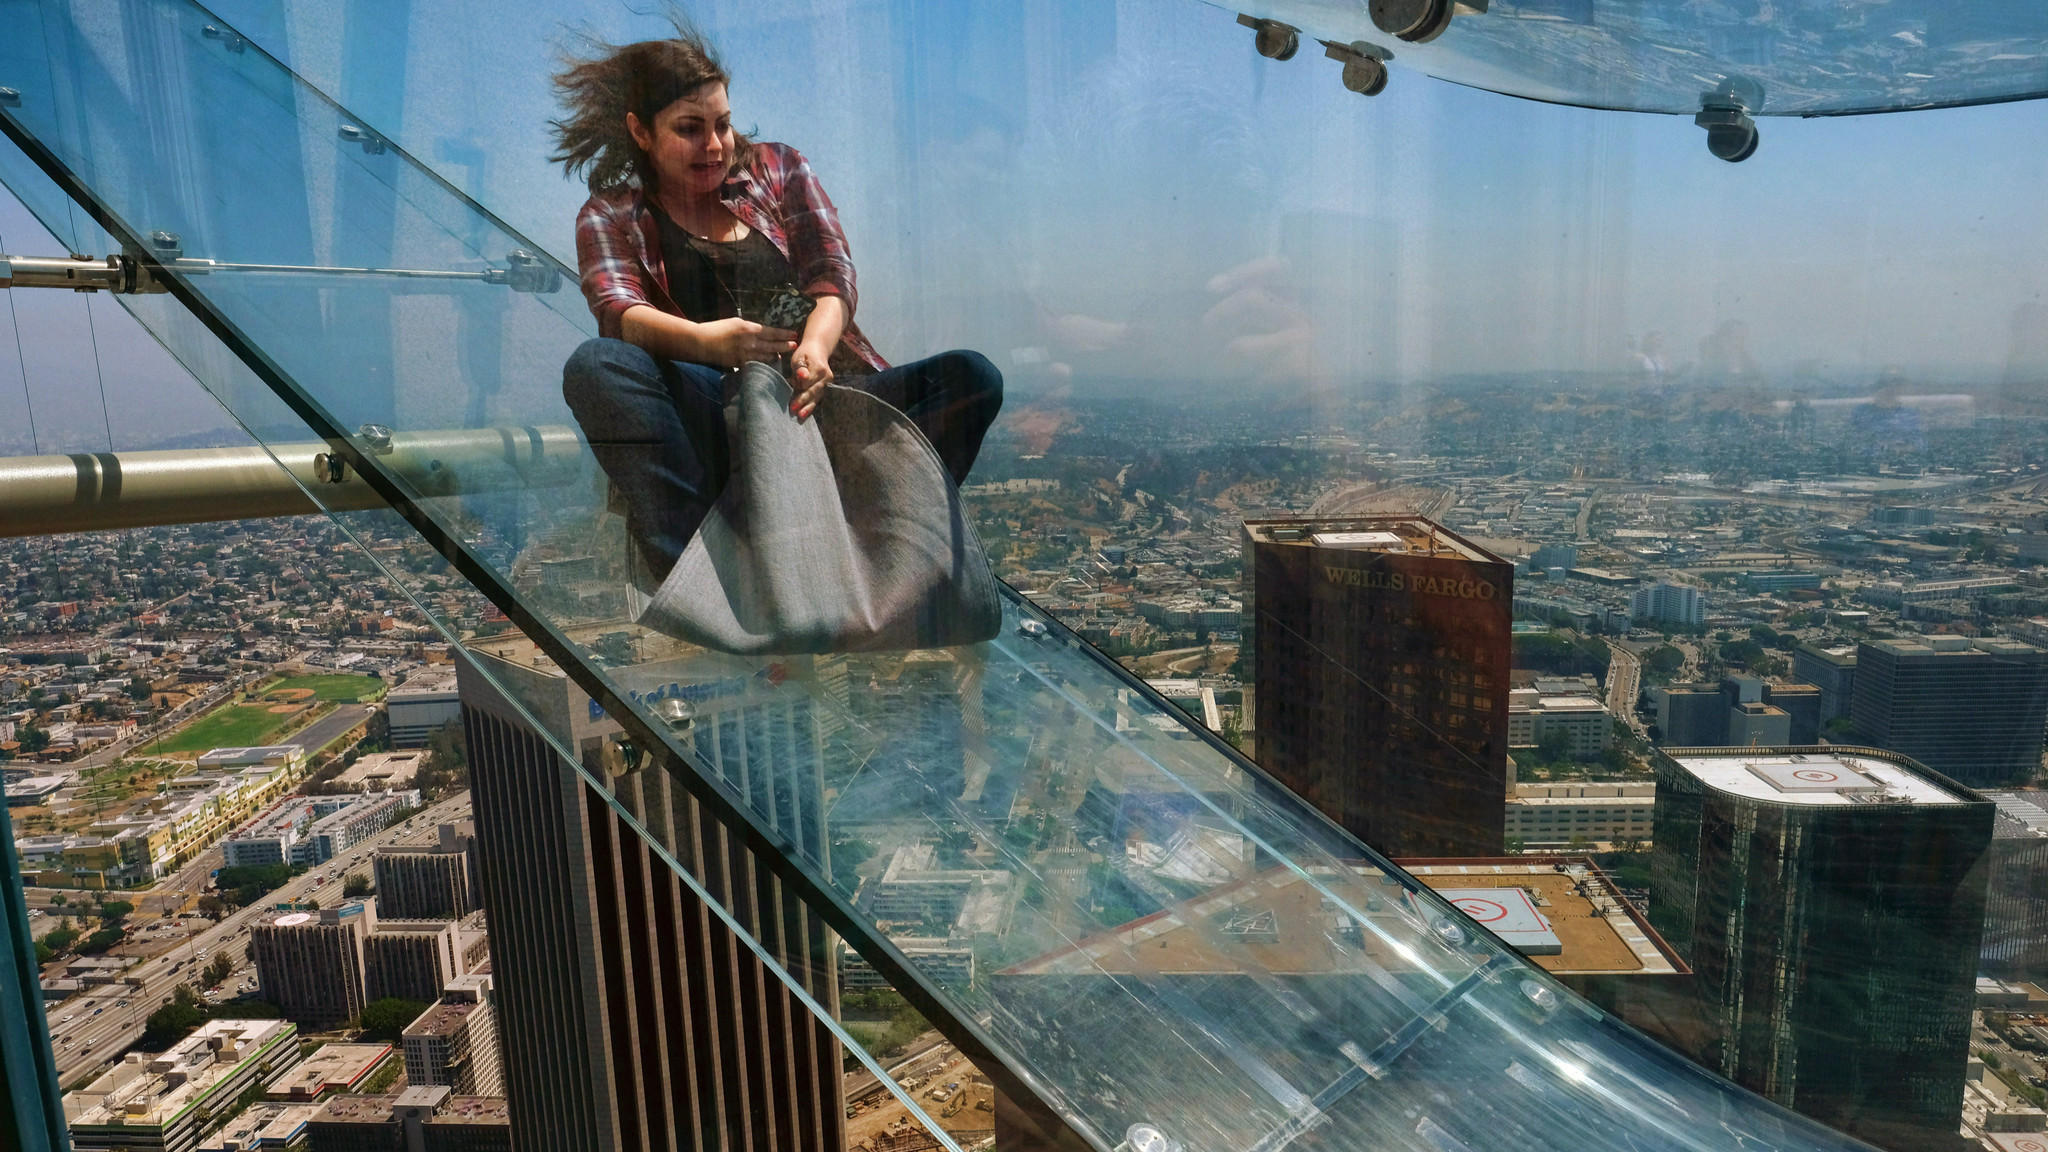 What's it like to ride a glass slide 1,000 feet above L.A ...